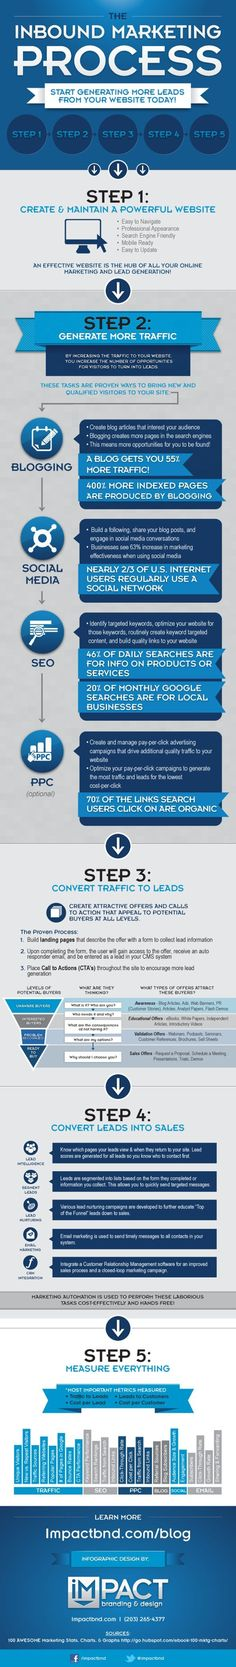 Inbound #marketing is one of the best ways to grow your business. Check out this #infographic to learn how to use it for your business.